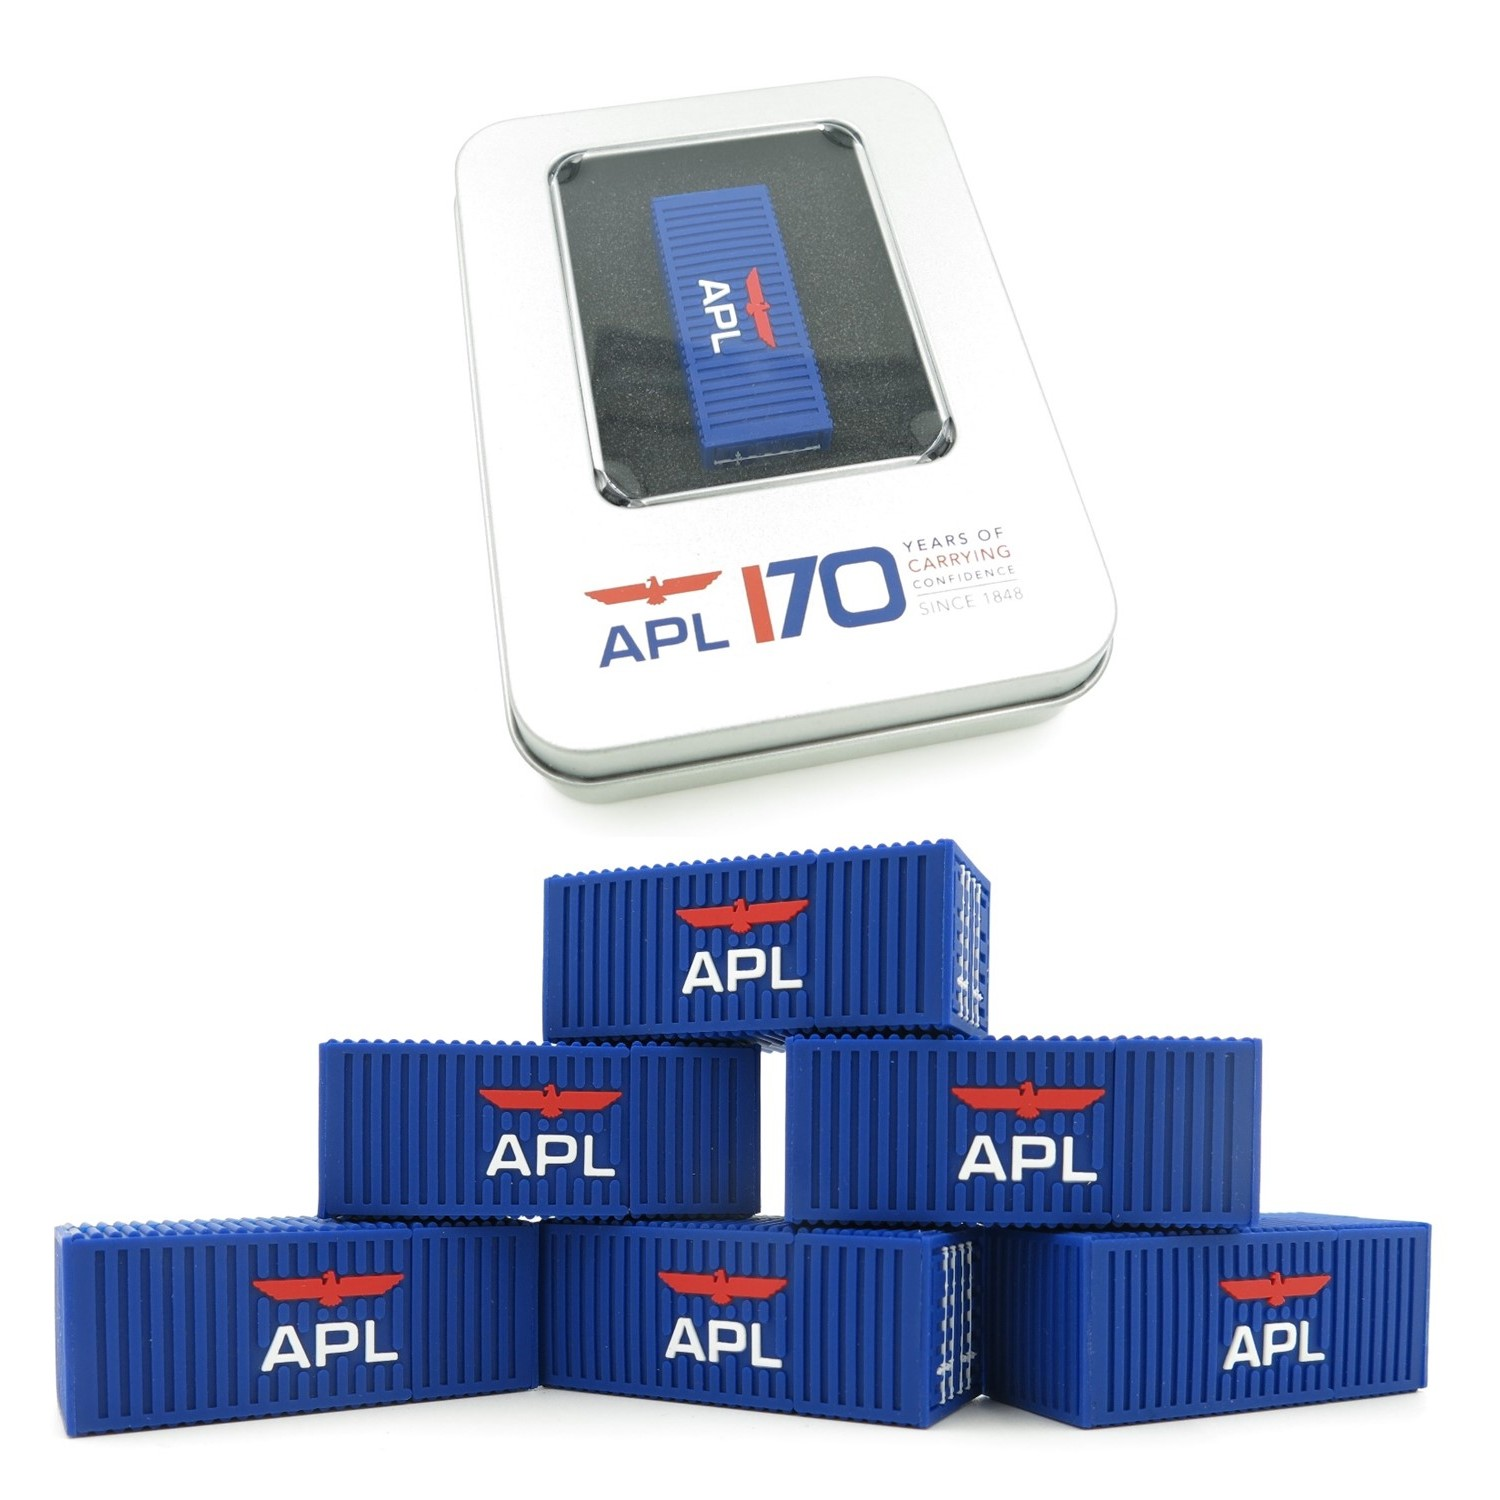 APL - Customised 3D USB thumbdrive - Simplicity Gifts - Corporate Gifts Singapore - simplicitygifts.